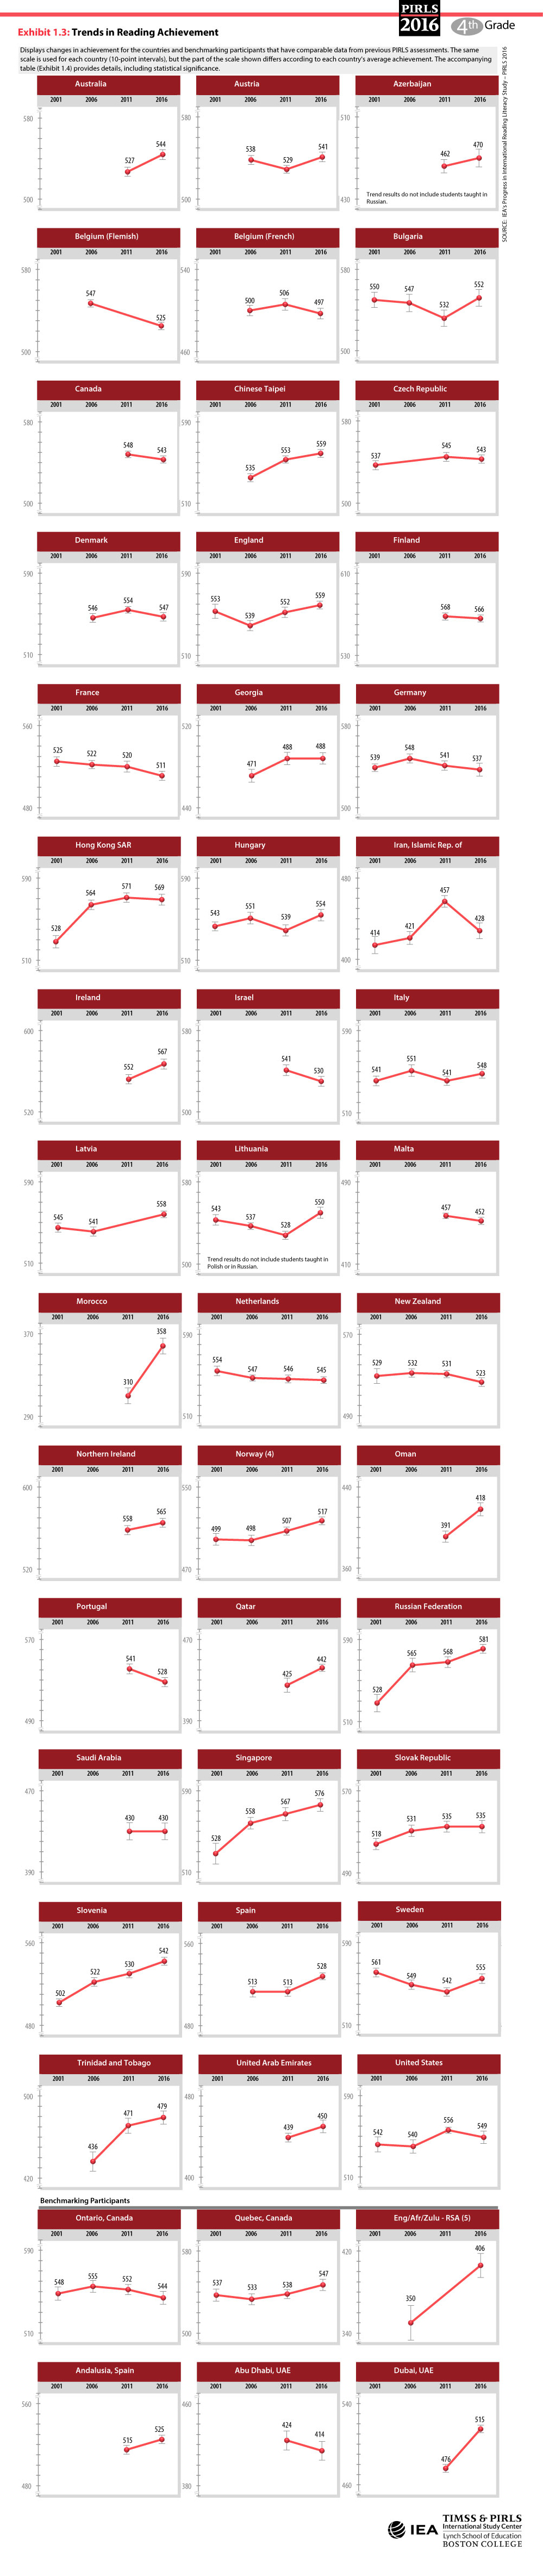 Trends in Reading Achievement Trend Plot